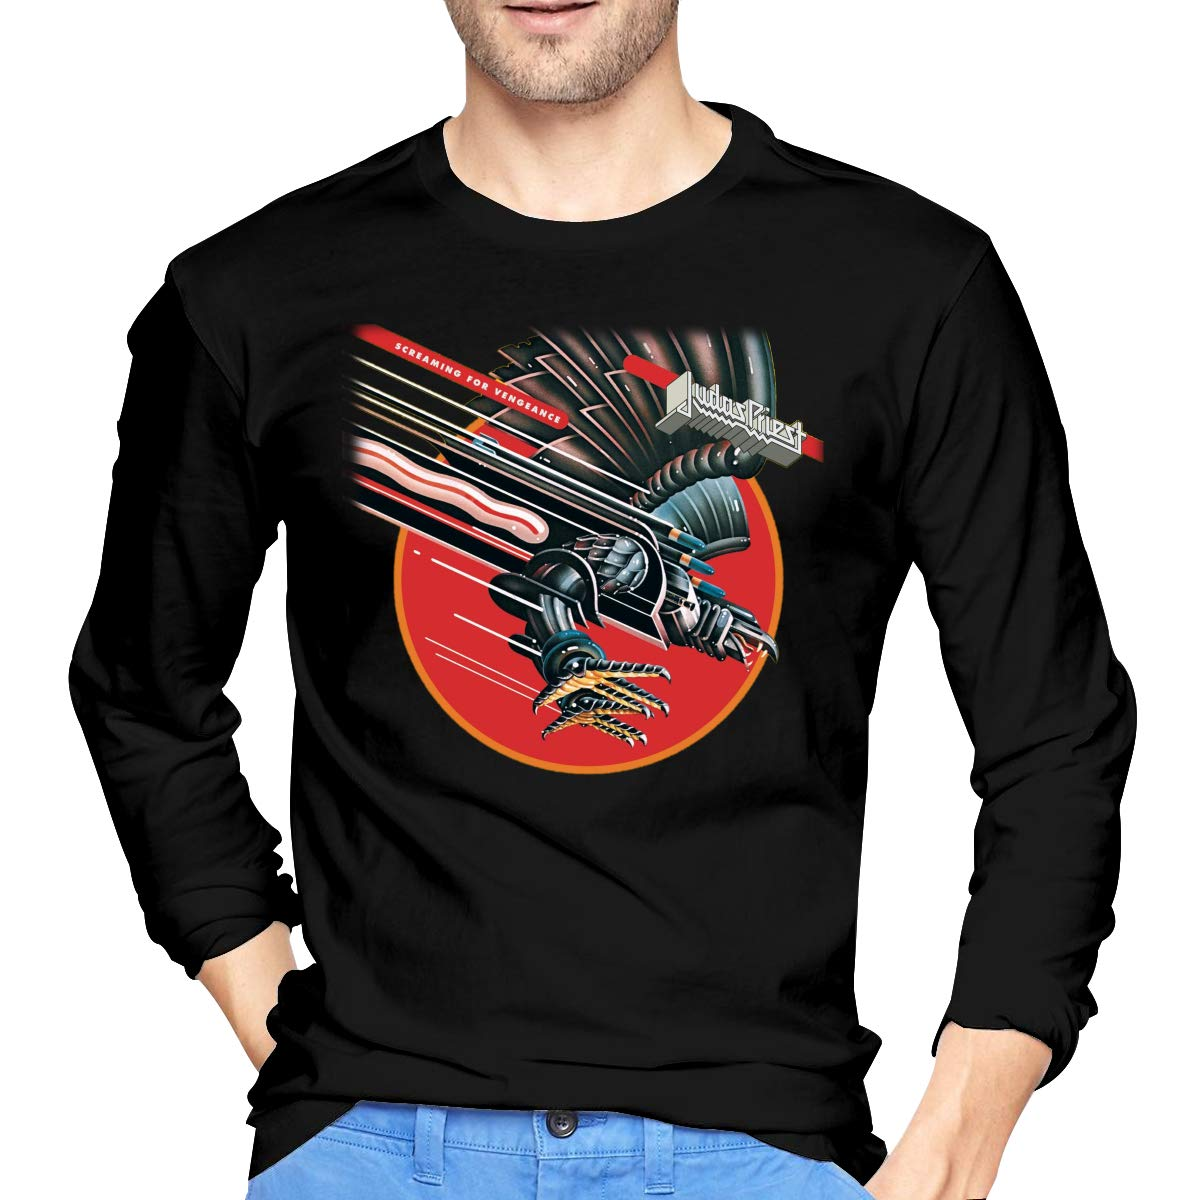 Men's Long Sleeve T-Shirts Judas Screaming for Vengeance Priest Cotton Round Neck T Shirts